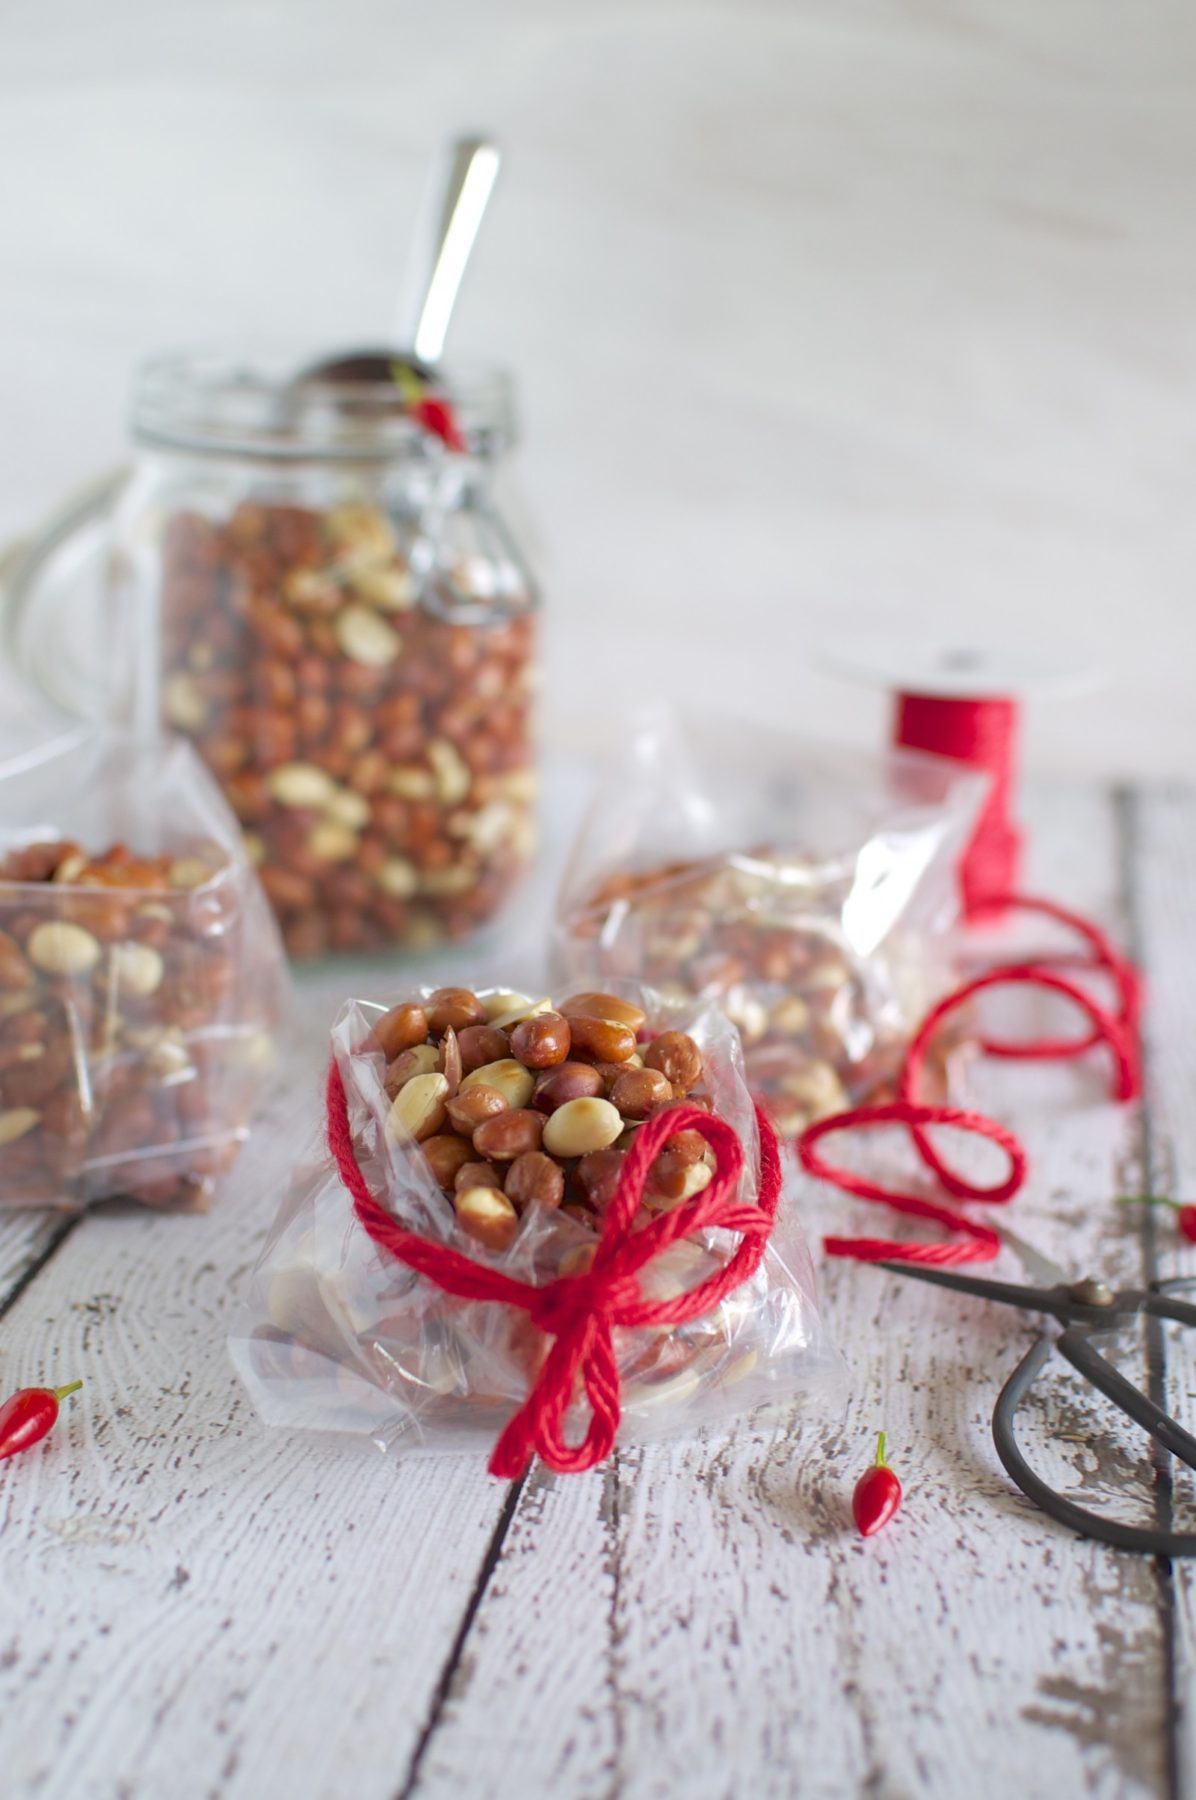 Chili peanuts – Foodie Secret Santa 2014